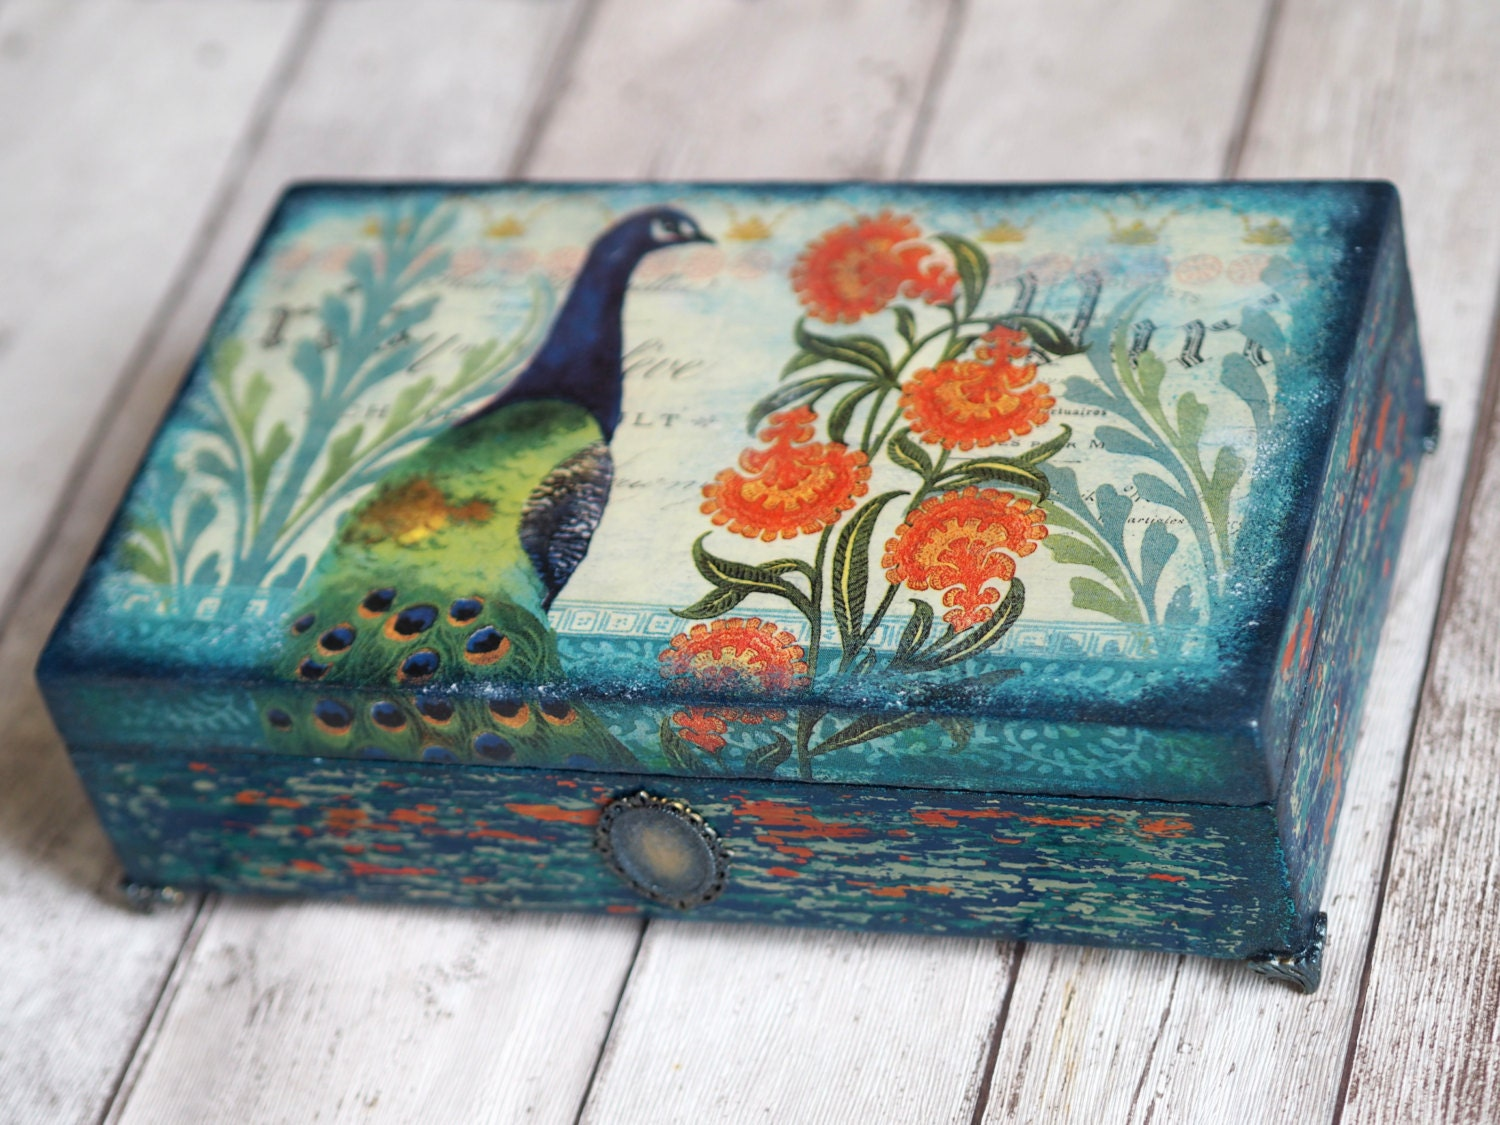 Home Decor Box Peacock Gift Peacock Home Decor by